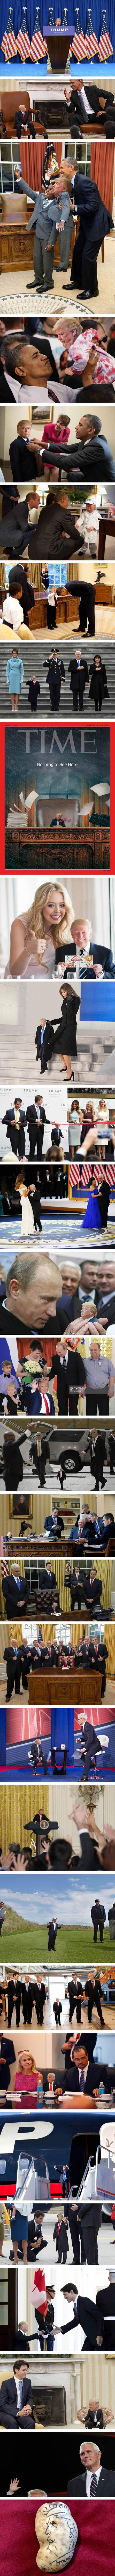 Behold Tiny Trump: New memes showing the President in a smaller light are the latest to take the internet by storm - 9GAG